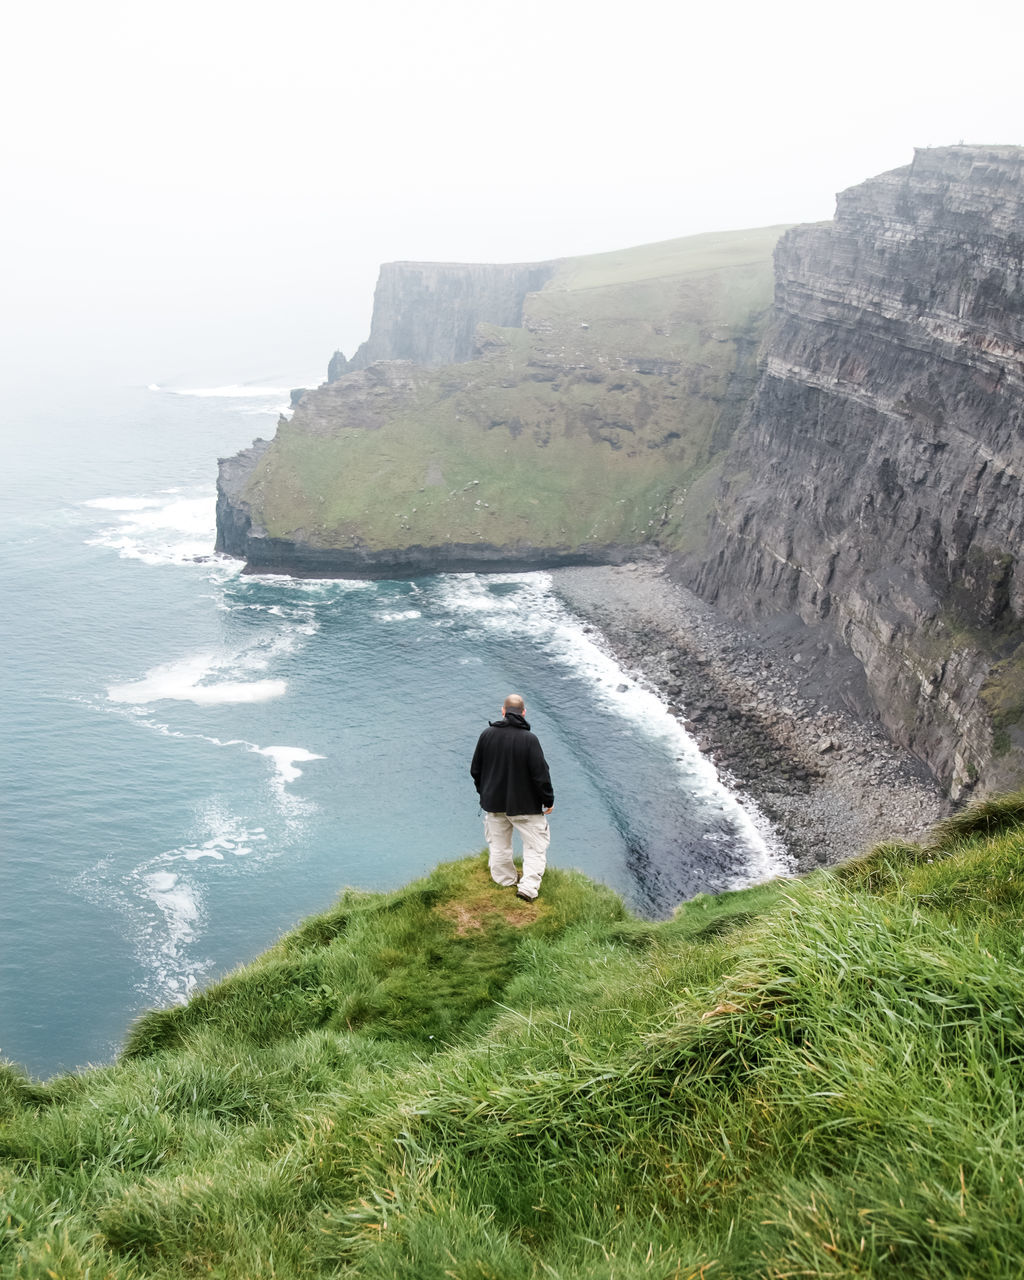 sea, nature, water, beauty in nature, real people, scenics, rear view, clear sky, rock - object, leisure activity, one person, outdoors, horizon over water, day, full length, motion, lifestyles, sky, wave, cliff, standing, beach, women, vacations, grass, young adult, people